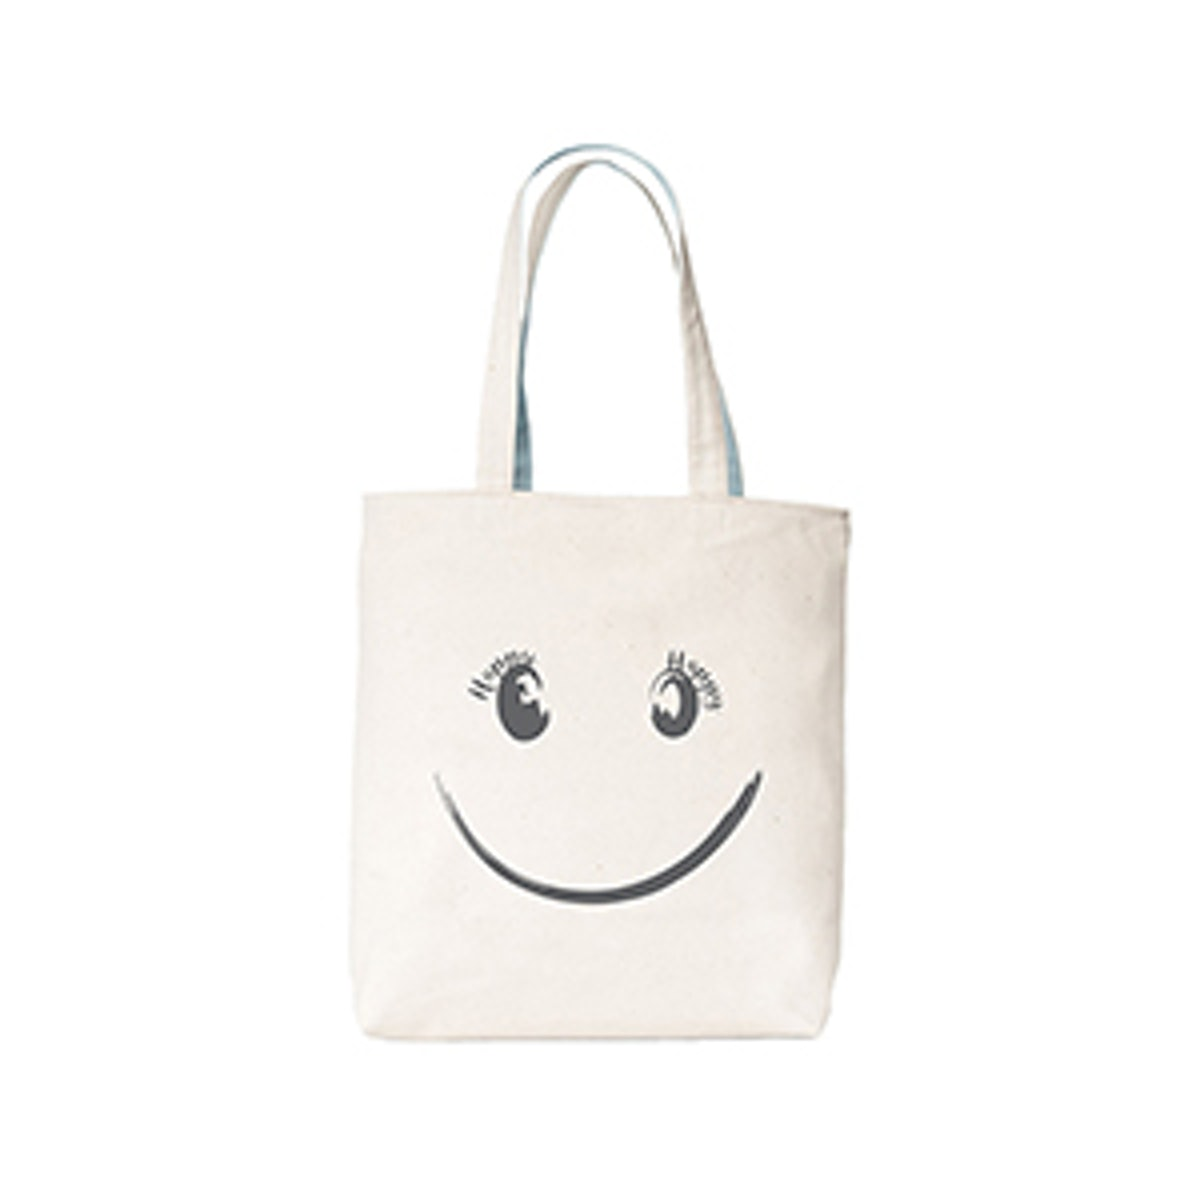 The Perfect Organic Tote- Good Moods